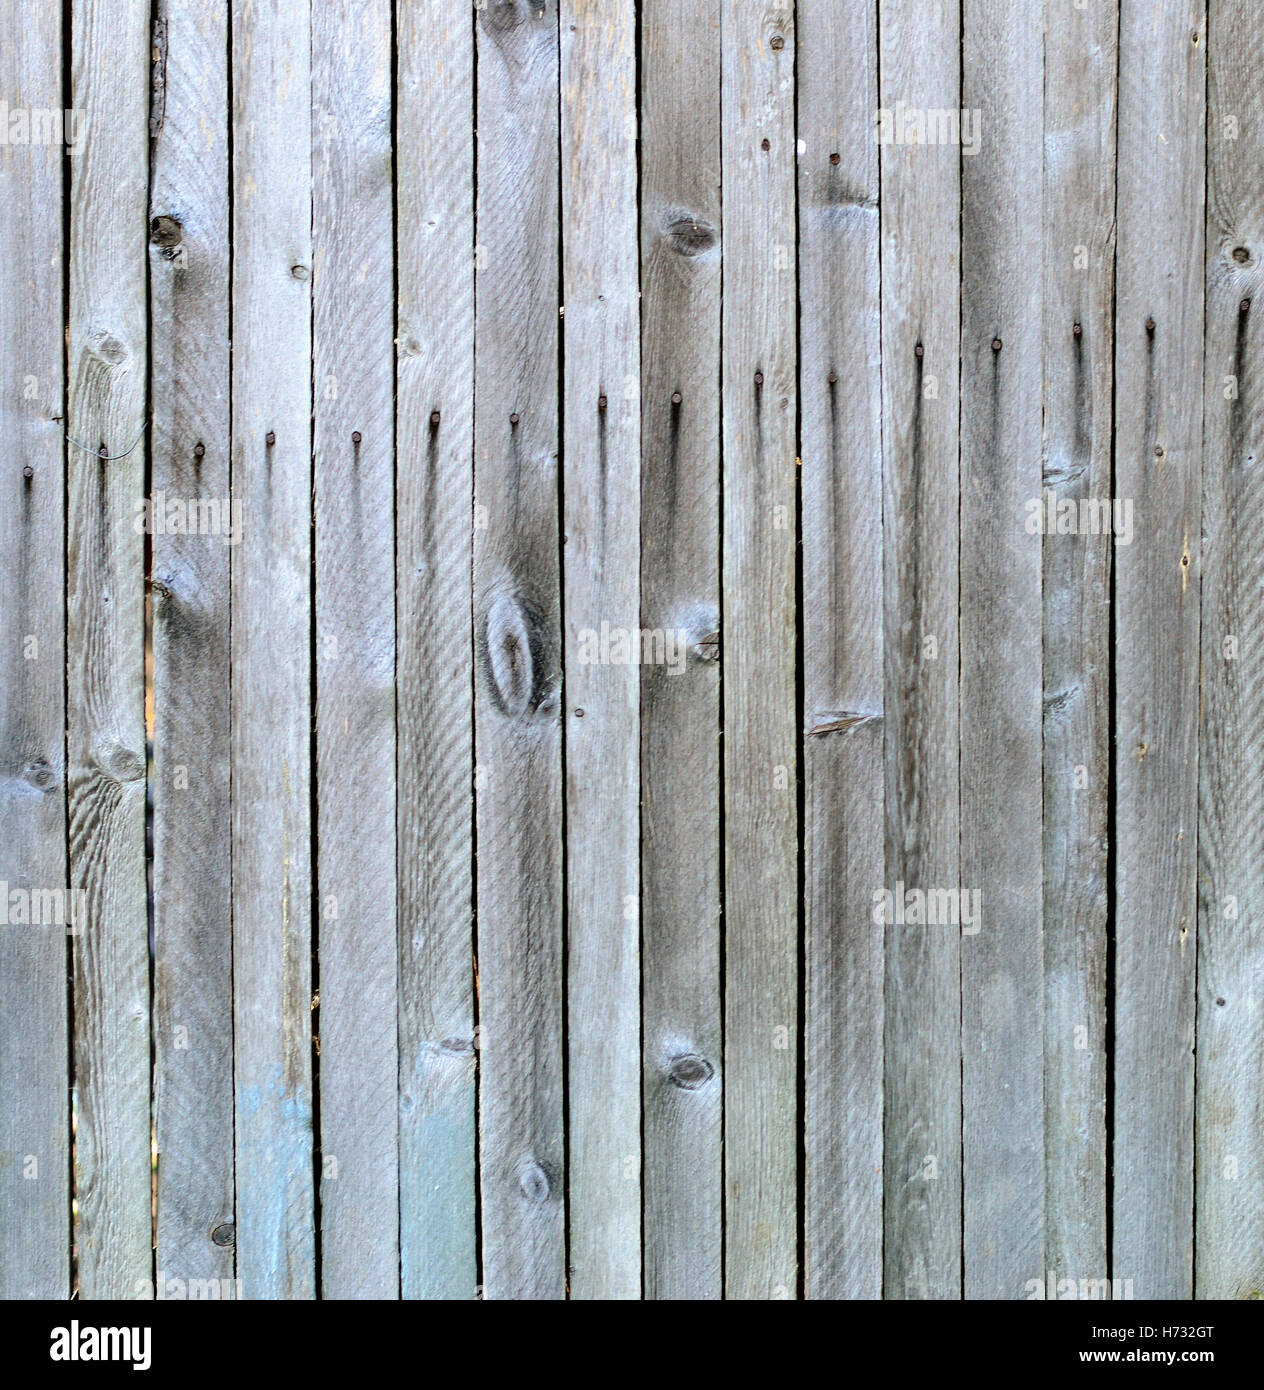 wooden planks - Stock Image